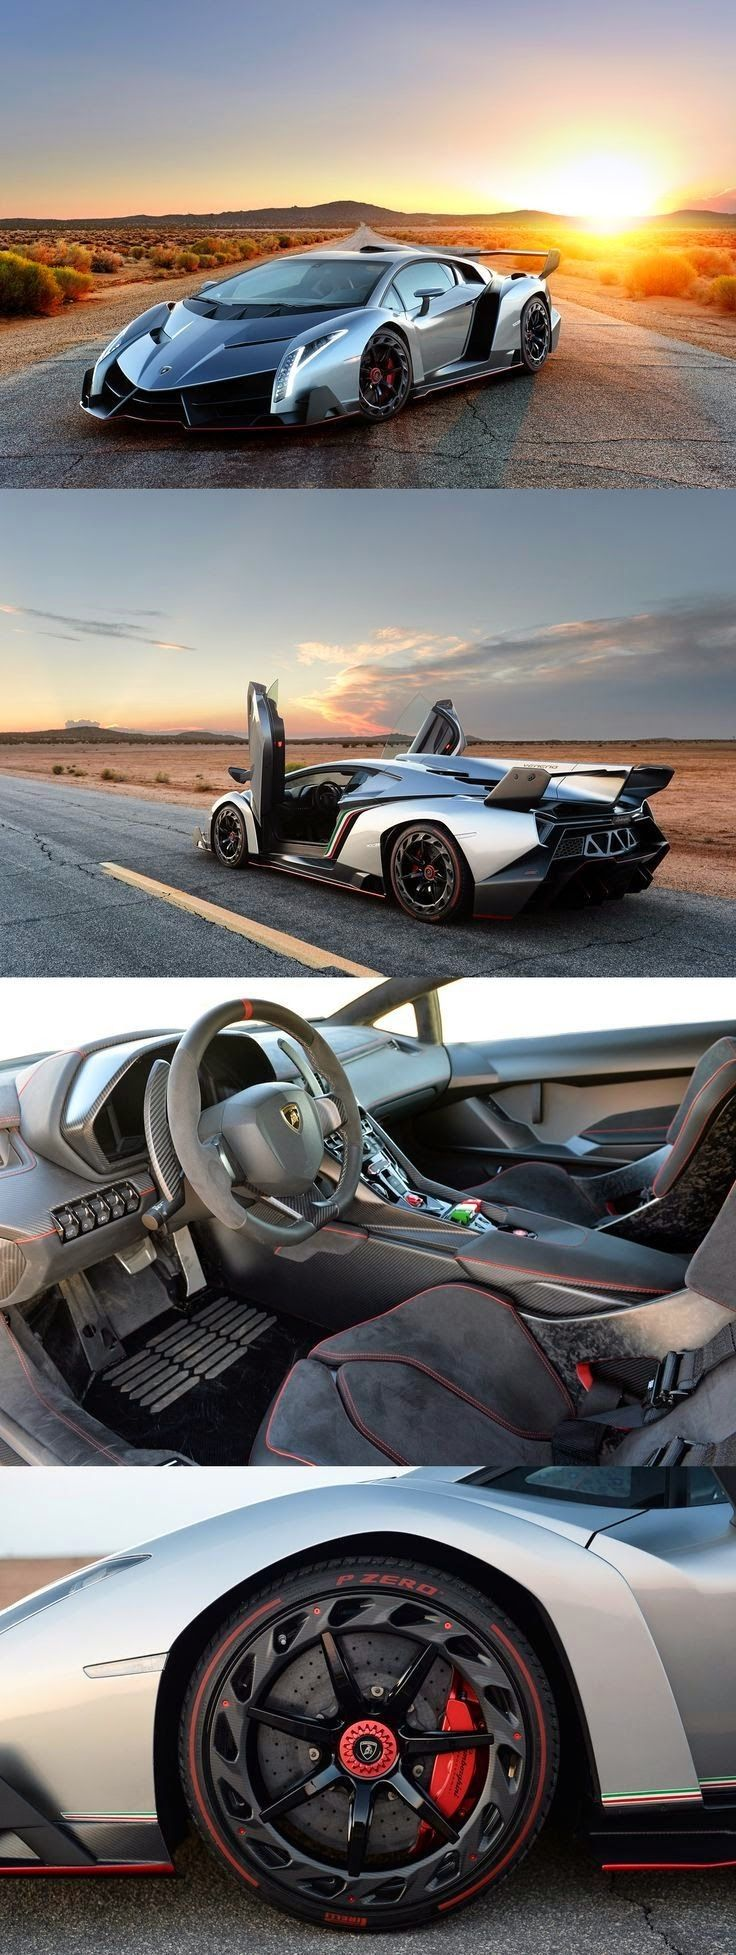 The Incredible $4.5 Million Lamborghini Veneno Roadster